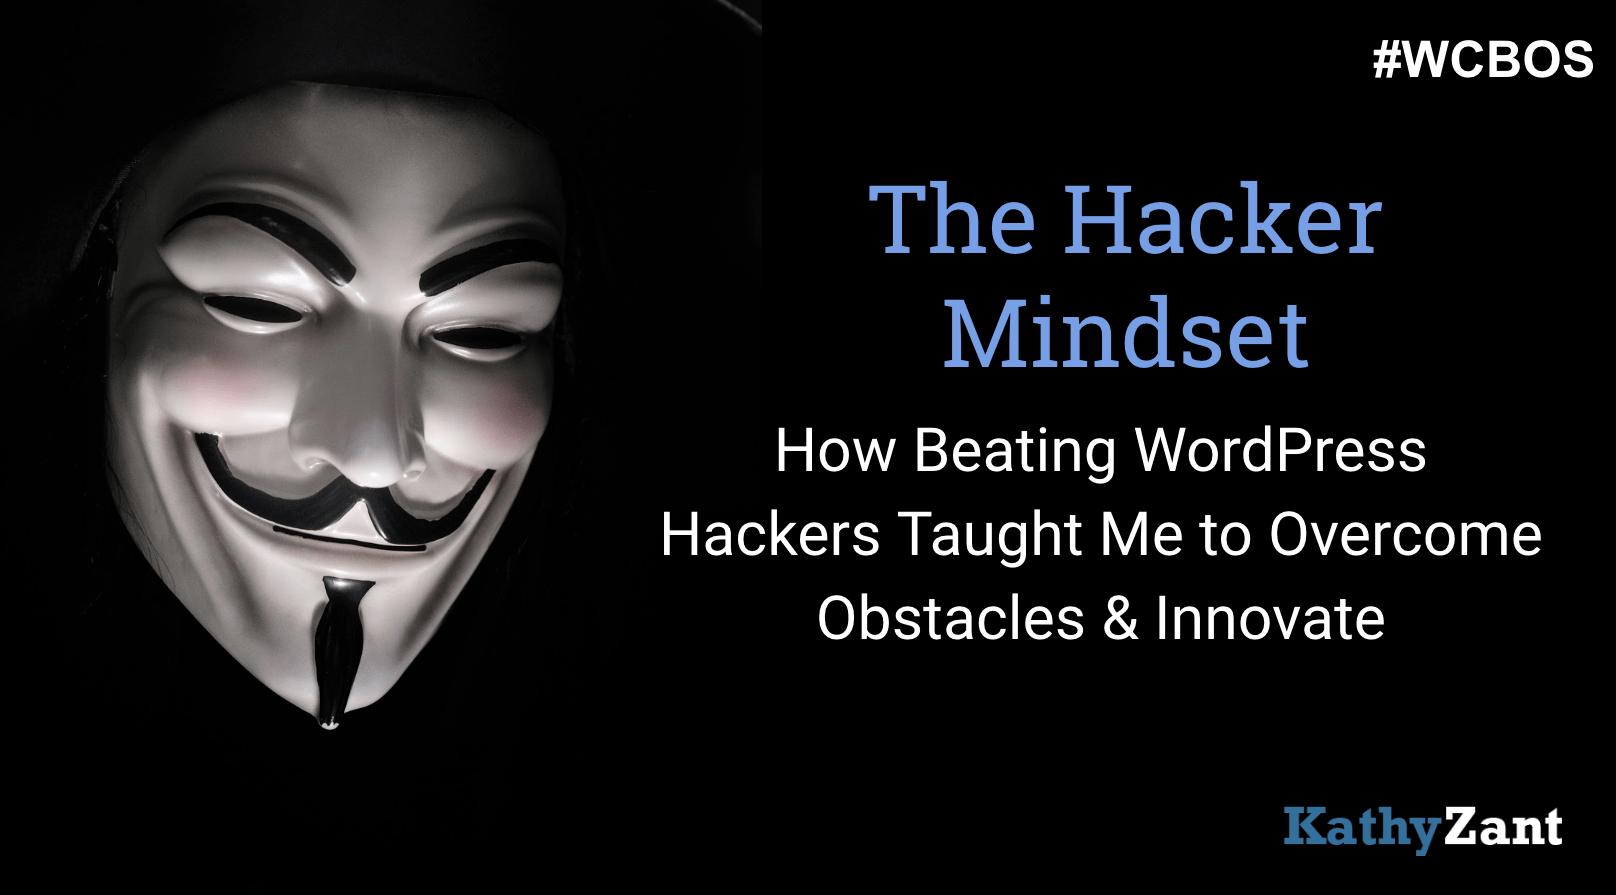 The Hacker Mindset